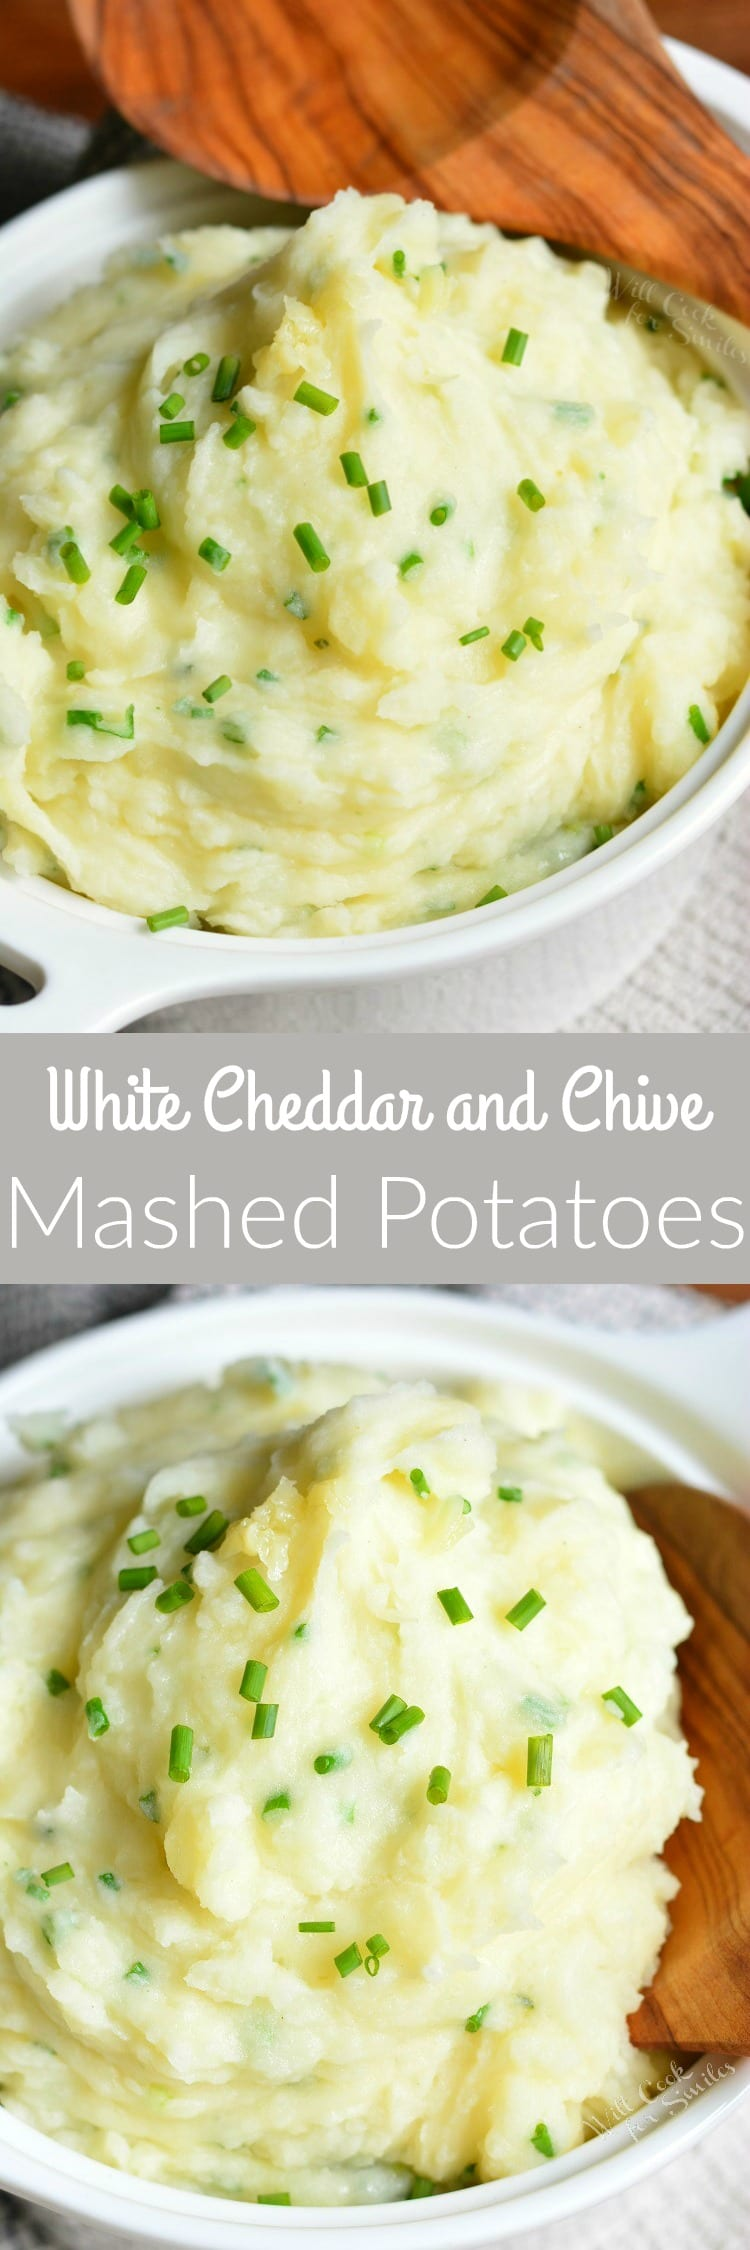 White Cheddar and Chive Creamy Mashed Potatoes. Smooth, fluffy, and creamy mashed potatoes made with Vermont white cheddar cheese and fresh chives adding delightful flavor pop to the dish.